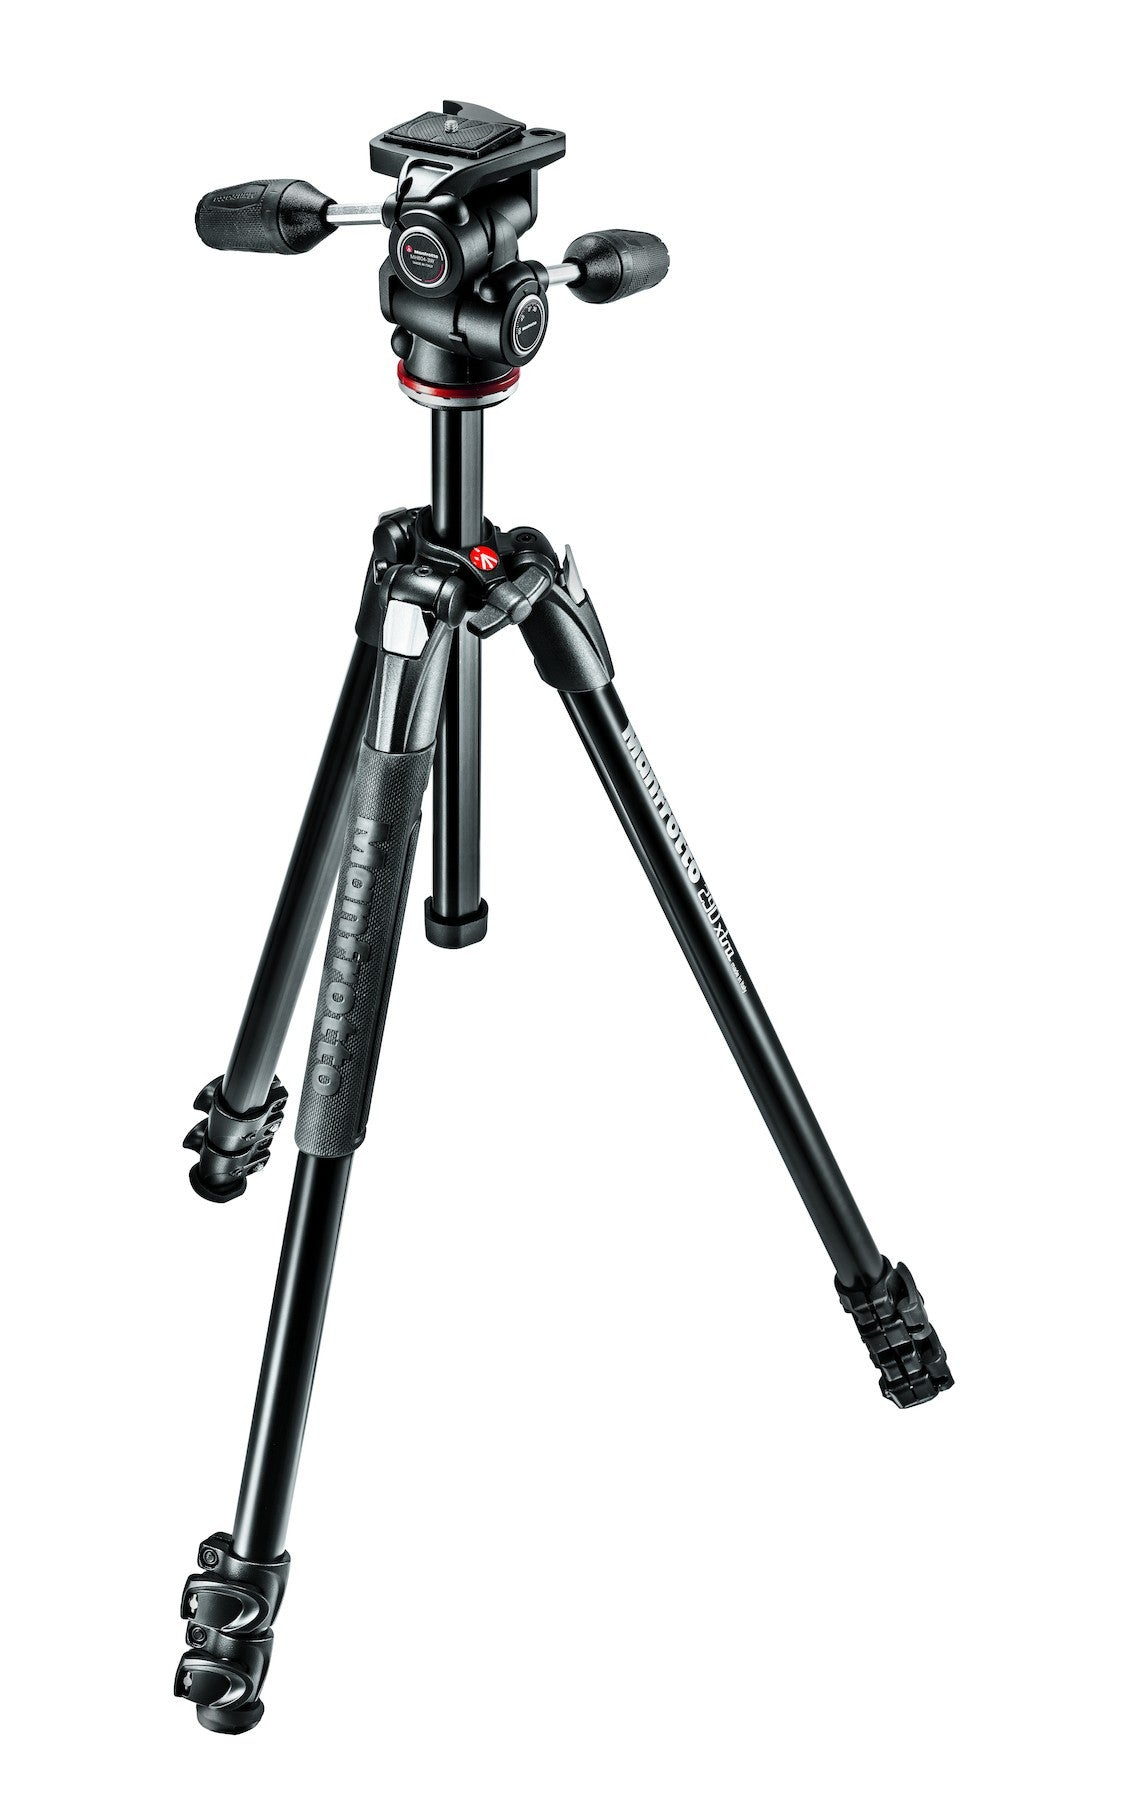 Manfrotto 290 Xtra 3-Way Head Kit - Photo-Video - Manfrotto - Helix Camera